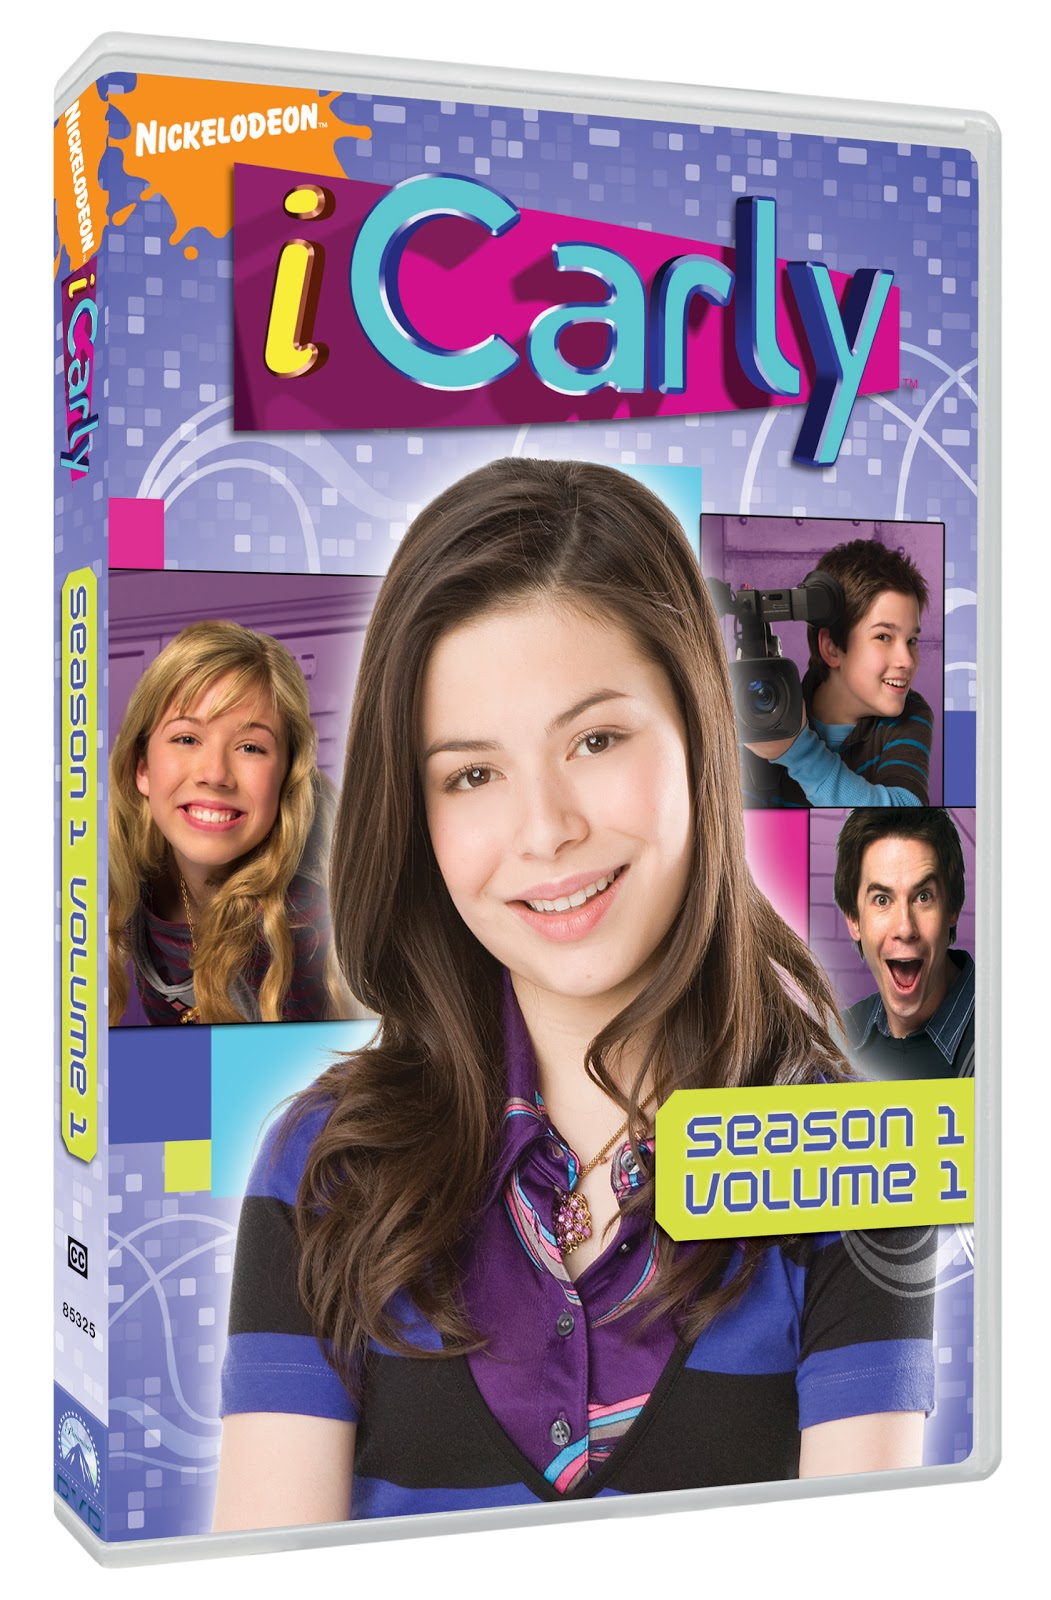 icarly iomg full episode 123movies